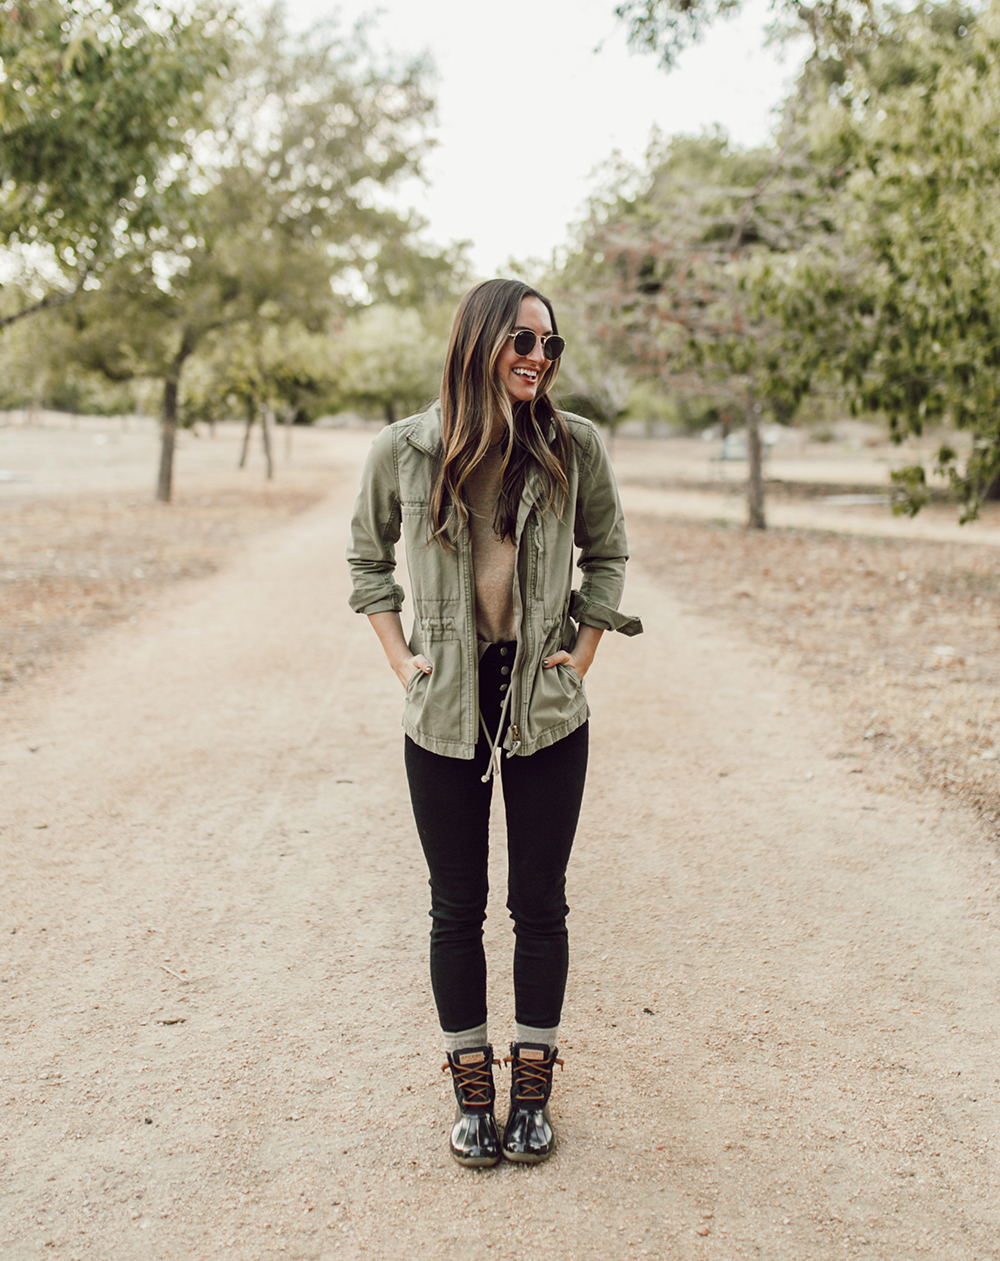 livvyland-blog-olivia-watson-austin-texas-lifestyle-fashion-blogger-sperry-saltwater-duck-boots-outfit-idea-fall-style-8